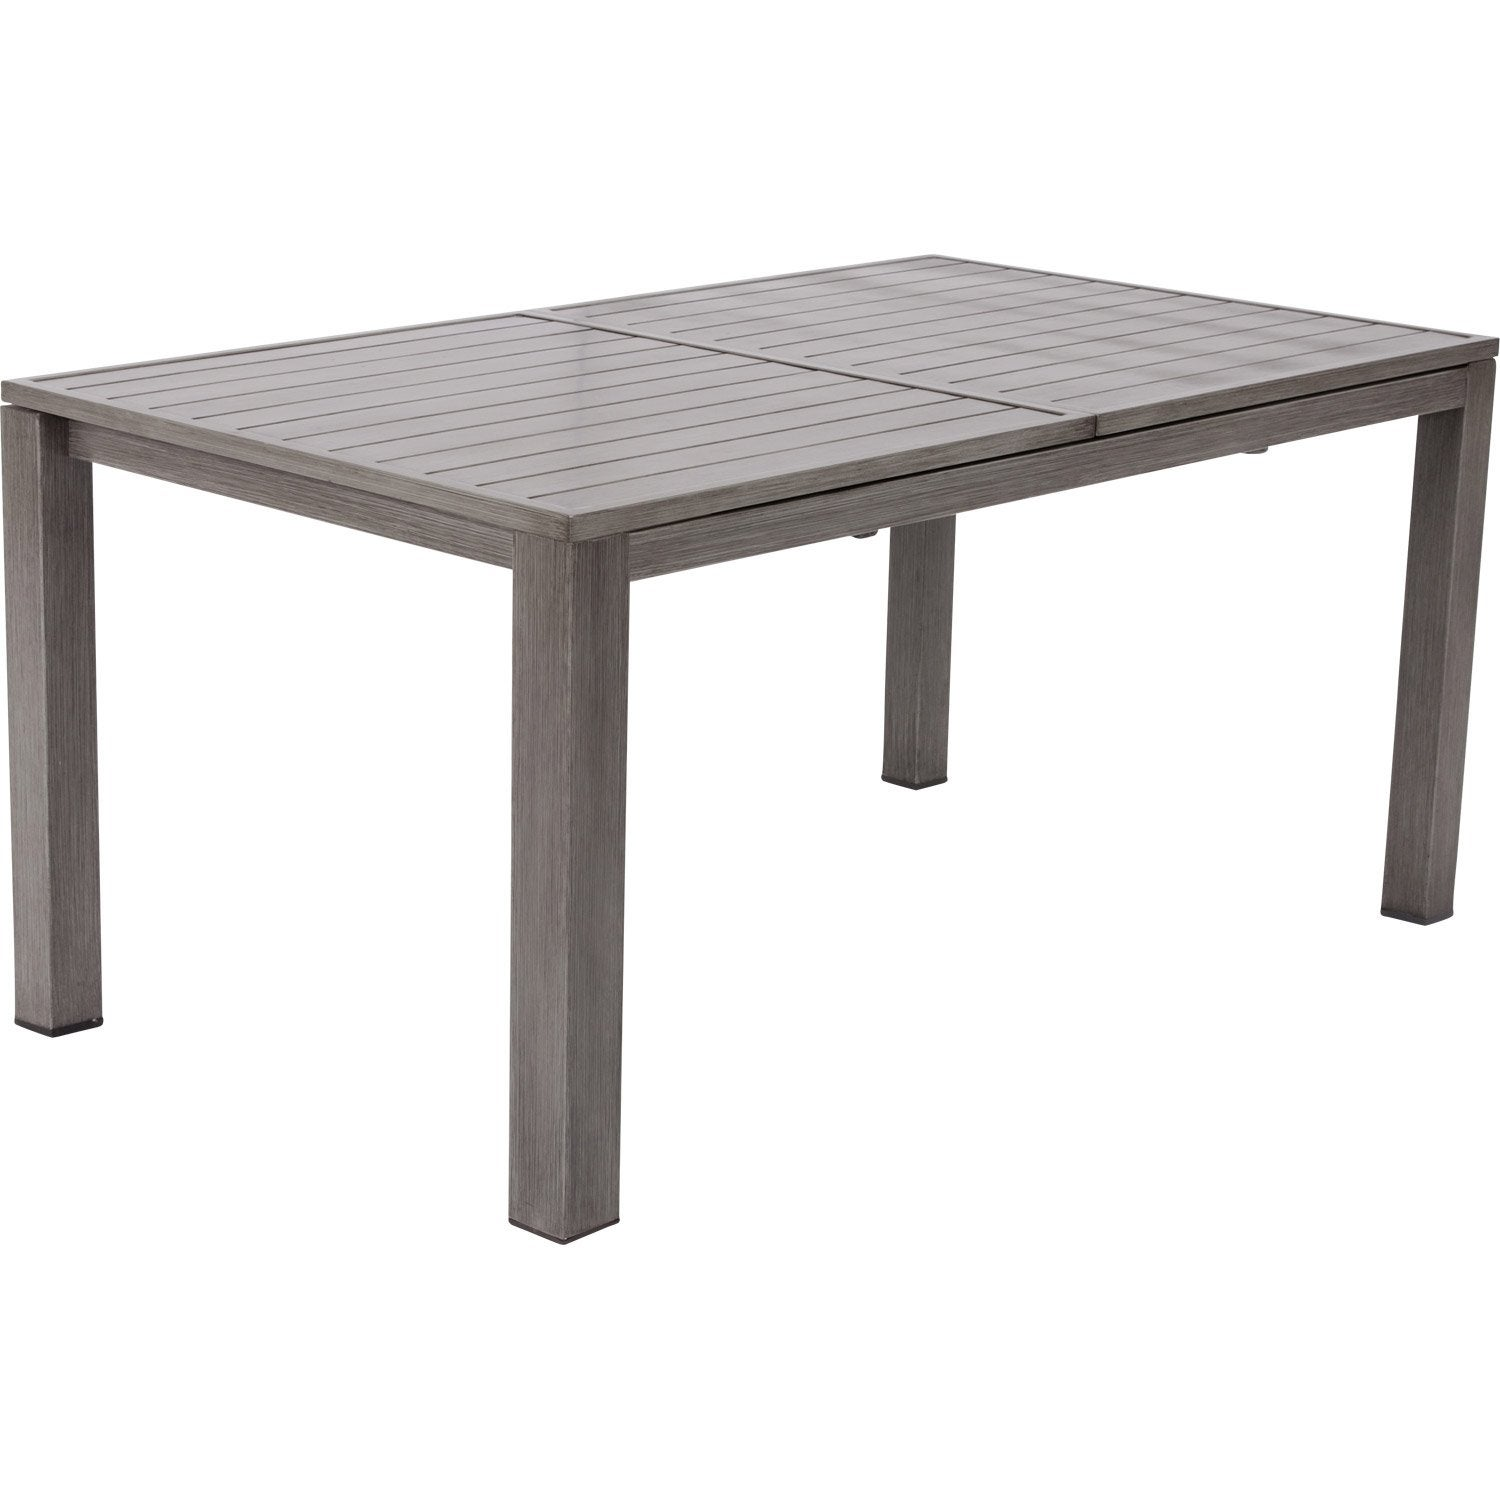 Table de jardin naterial antibes rectangulaire gris look for Table en aluminium exterieur